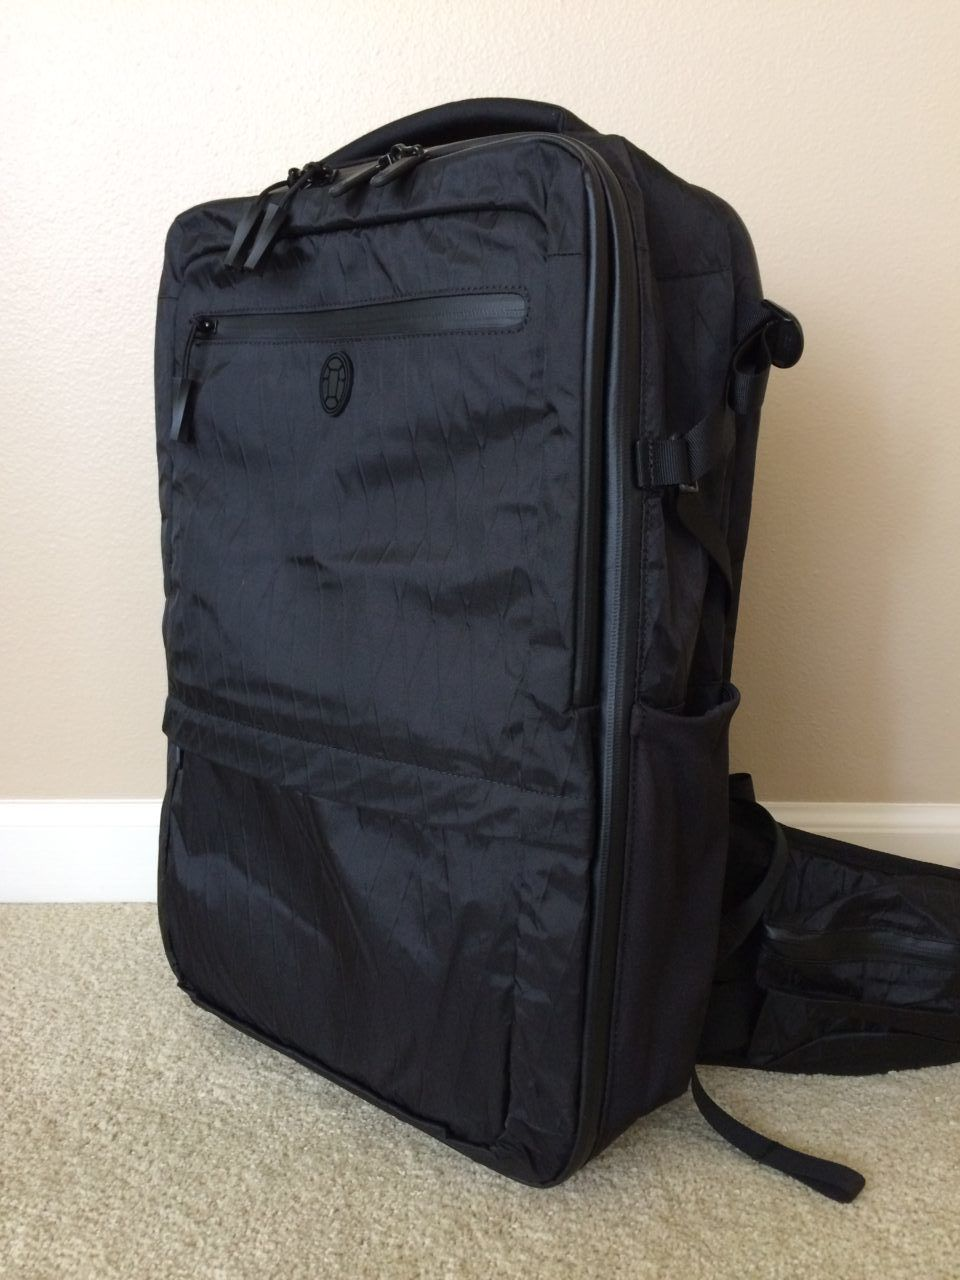 842a74b4f657 The Tortuga Outbreaker Backpack, thoroughly reviewed – Snarky Nomad ...